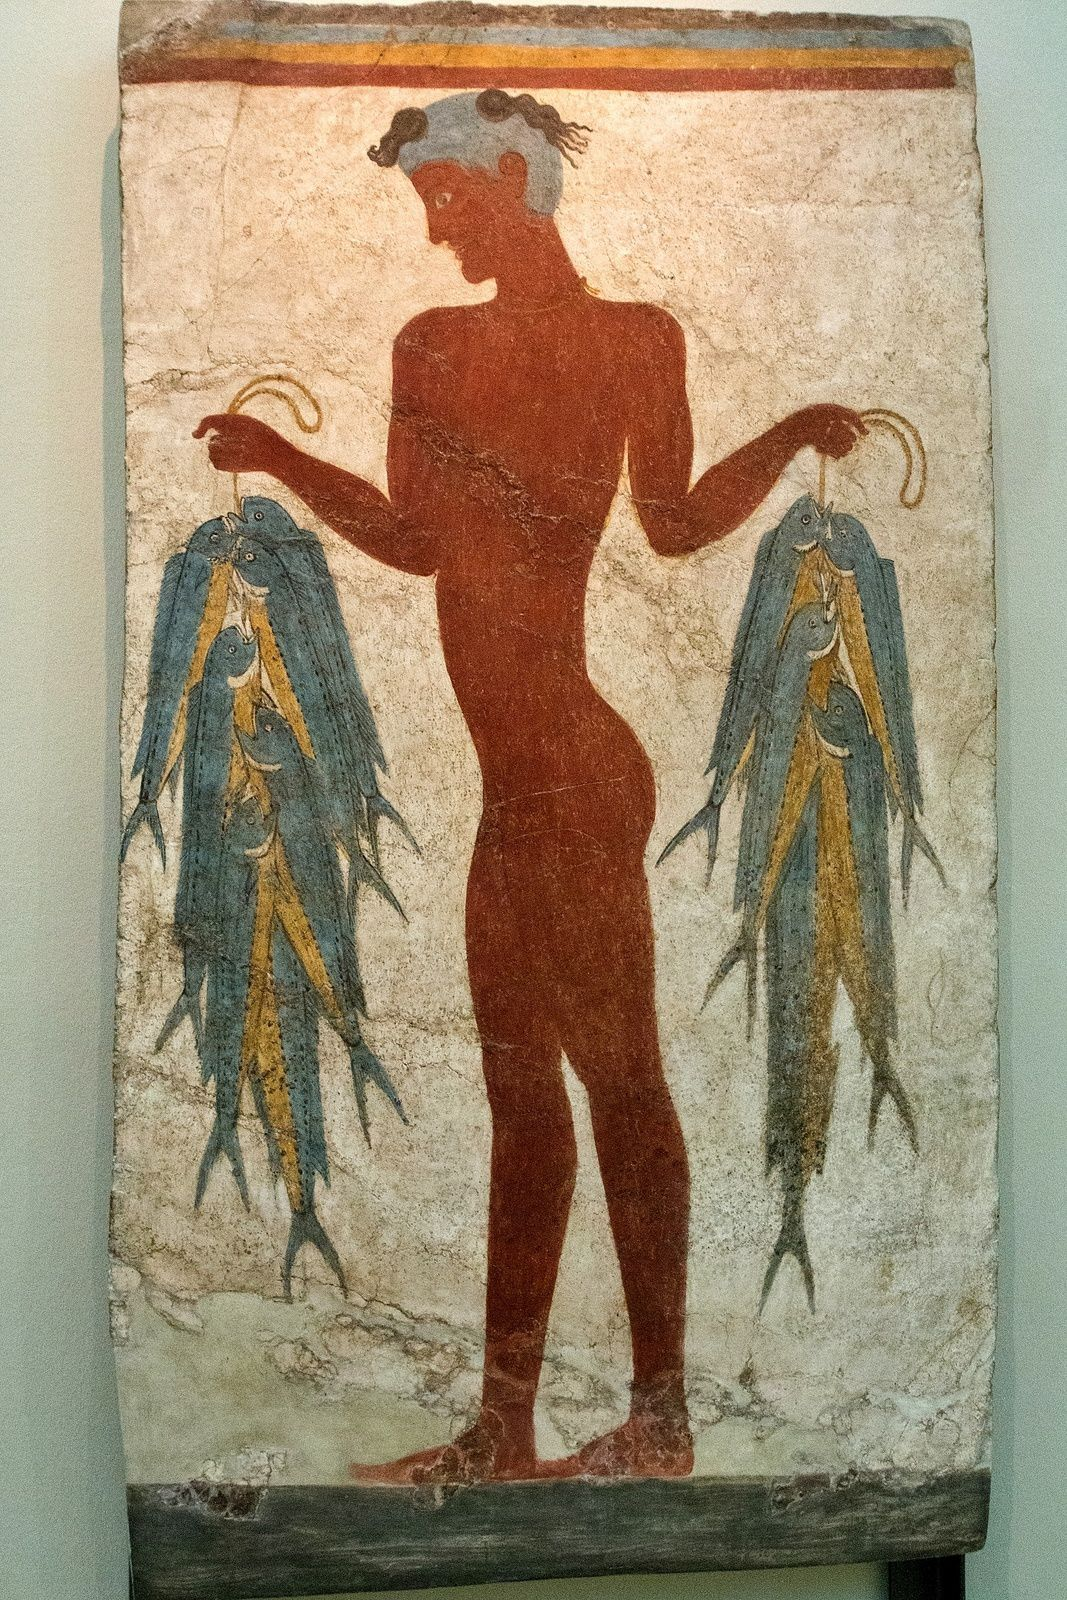 Santorini - archaeological site of Akrotiri - West house / room 4 - decoration with a young man with fish, naked and shaved head - photo © Bernard Duyck 09.2019